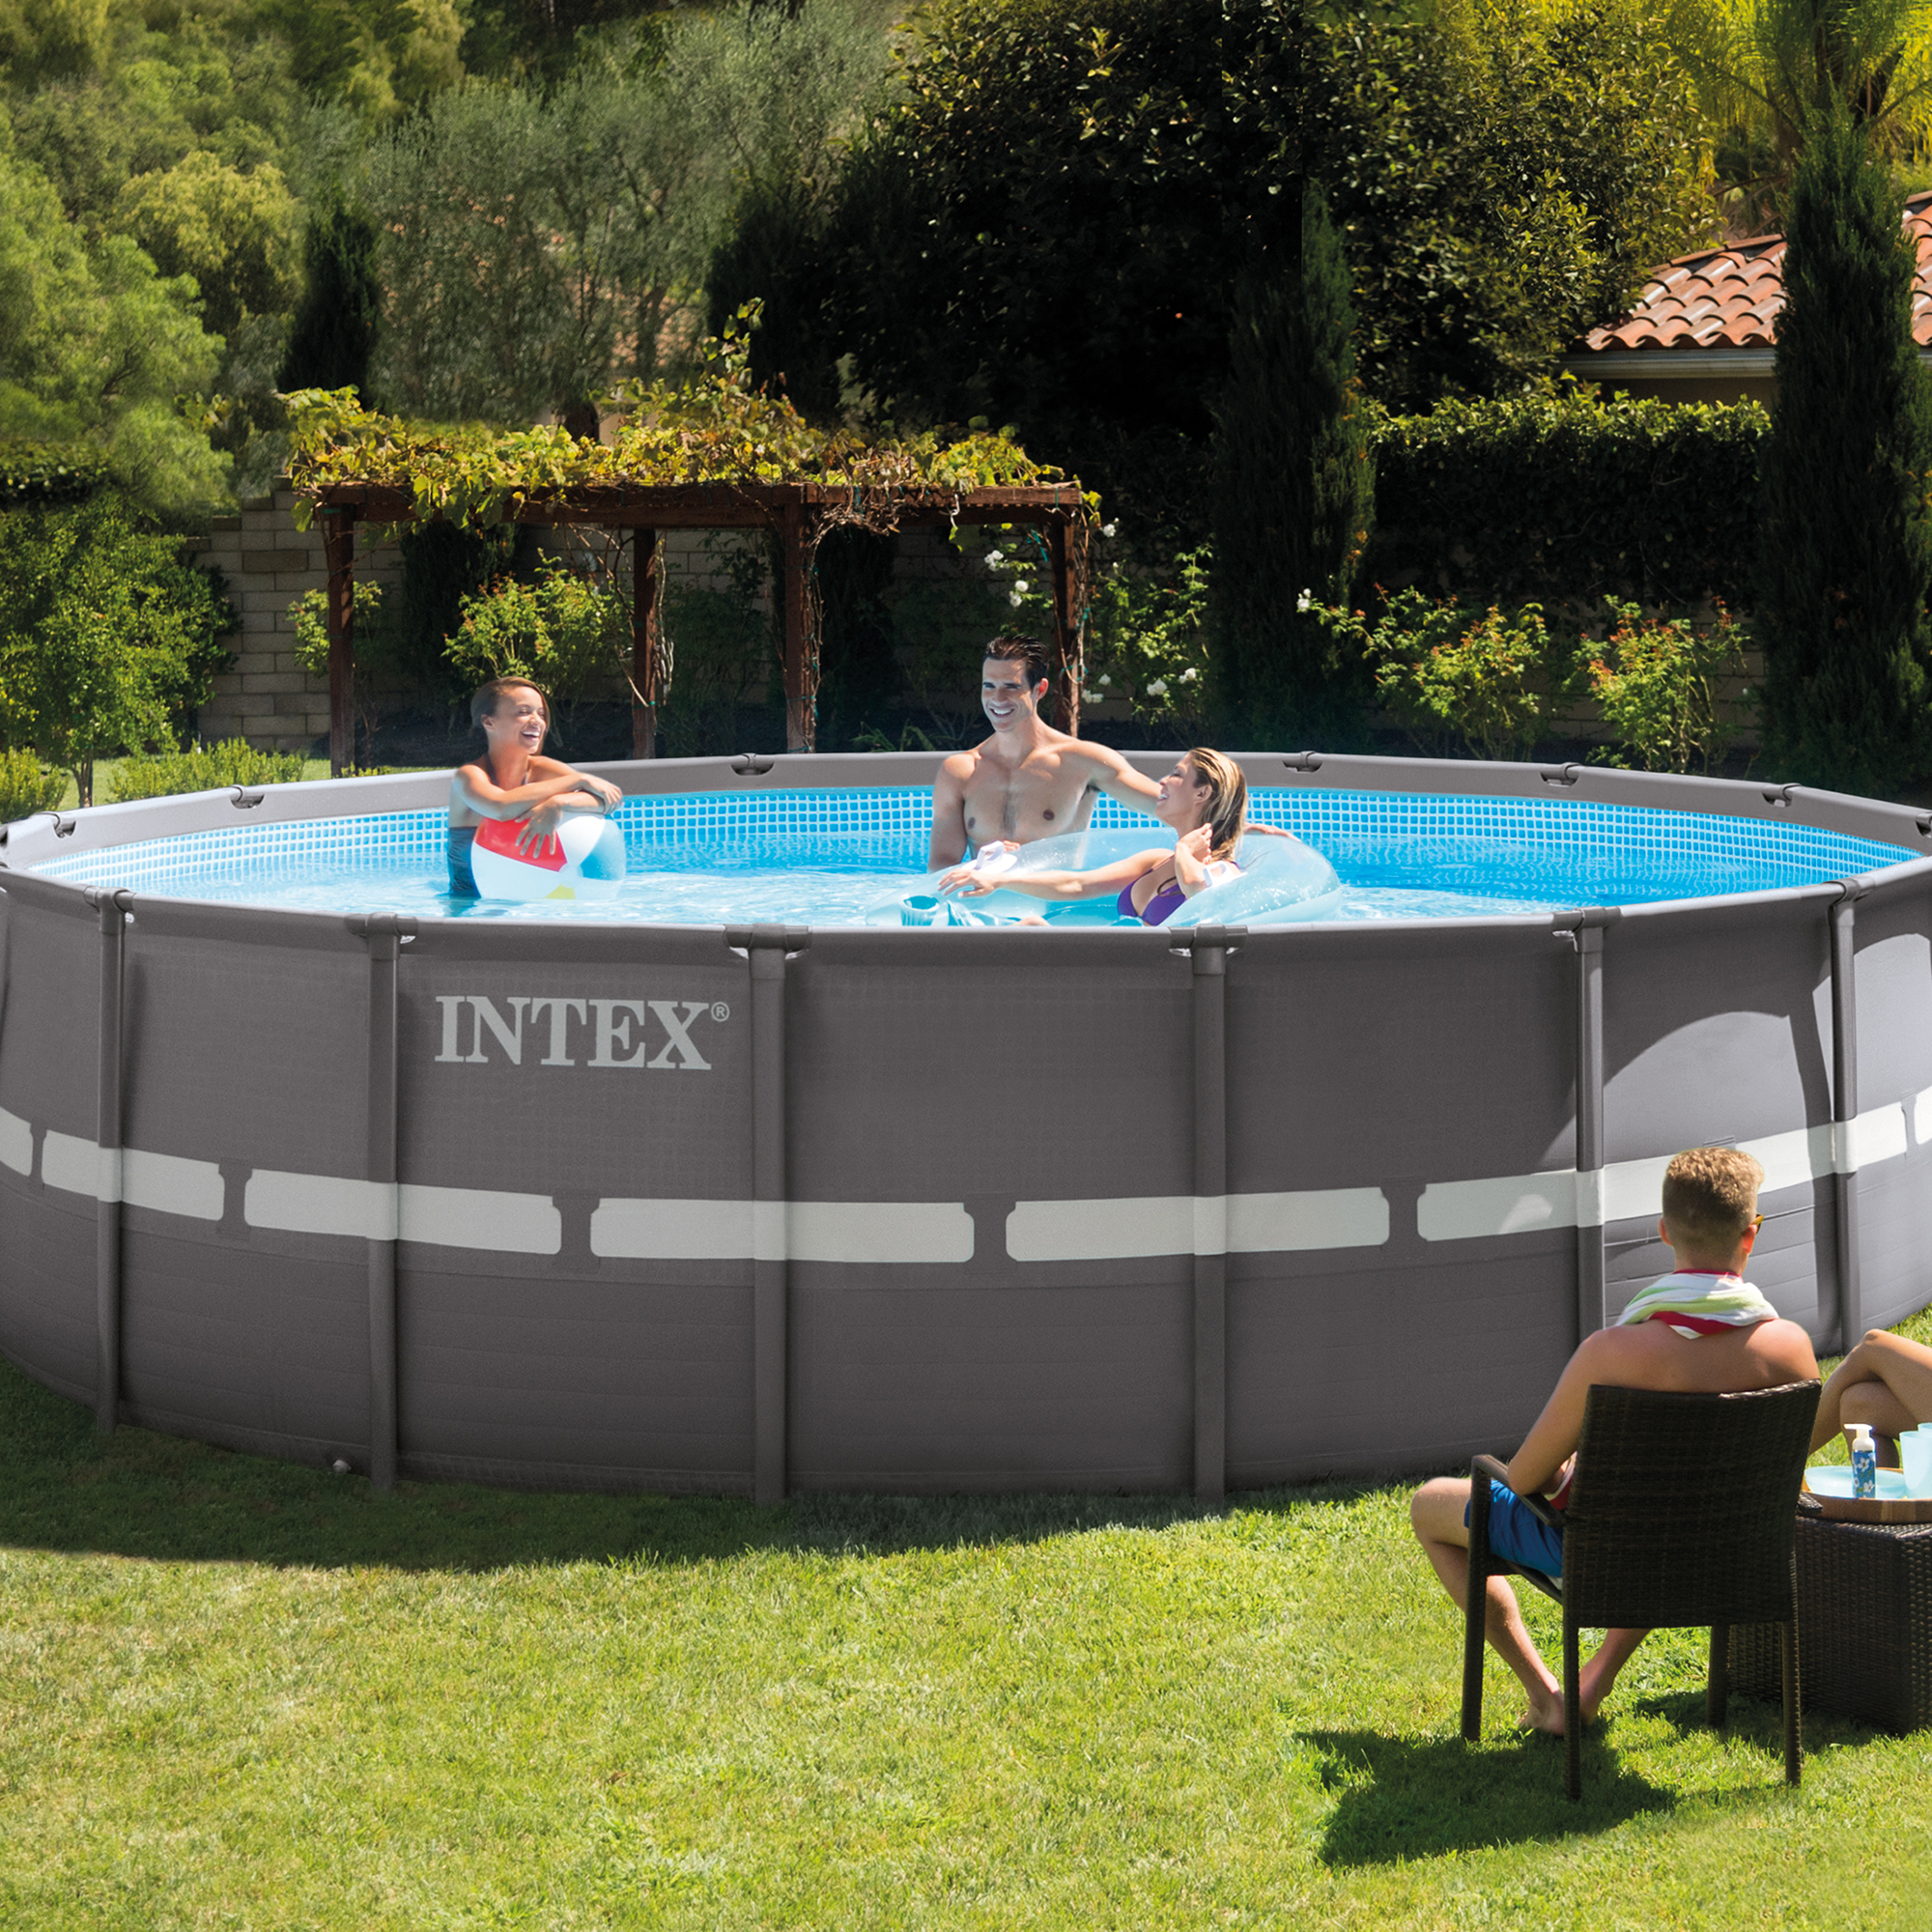 intex 18 39 x 52 ultra frame swimming pool set with 1600. Black Bedroom Furniture Sets. Home Design Ideas